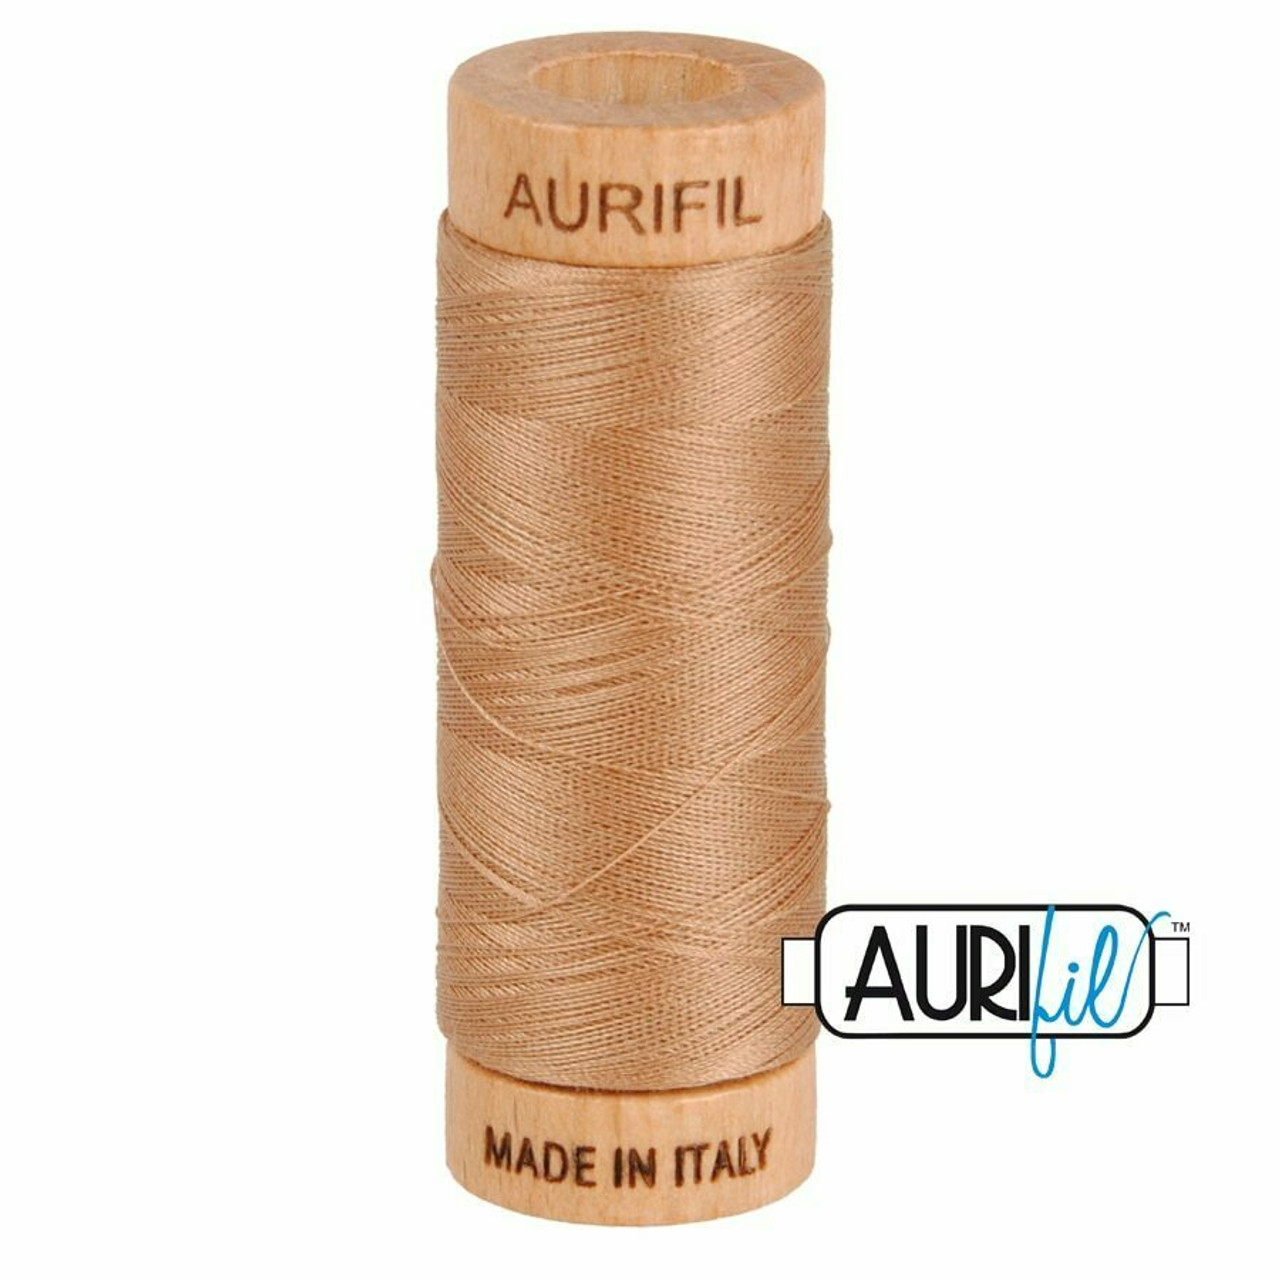 Aurifil 80wt Cafe' au Lait (2340) thread